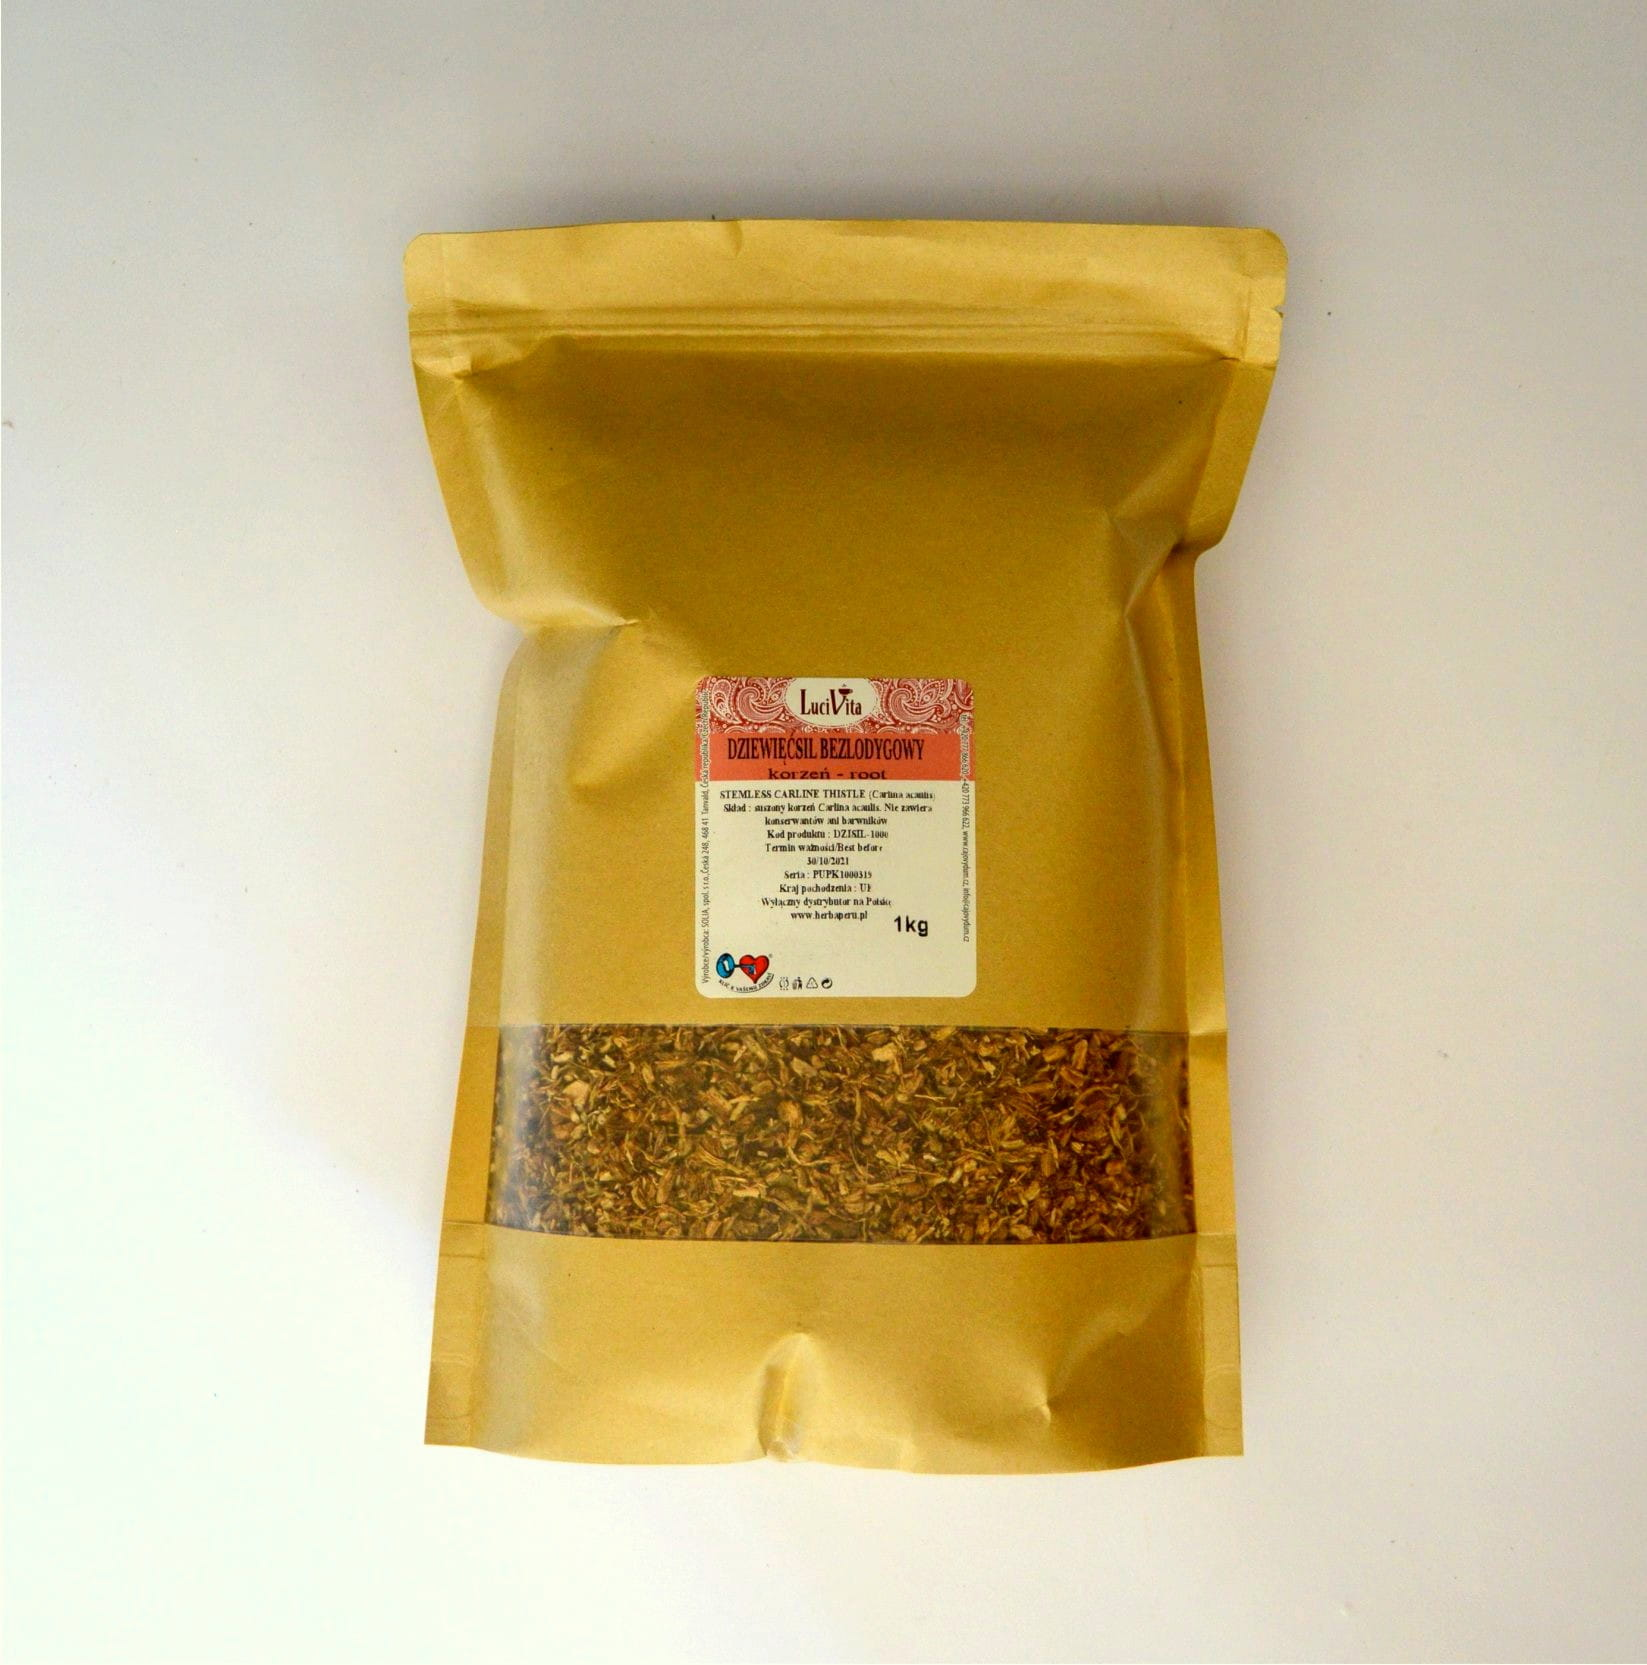 Stemless carline thistle - root - 1000g (1kg)